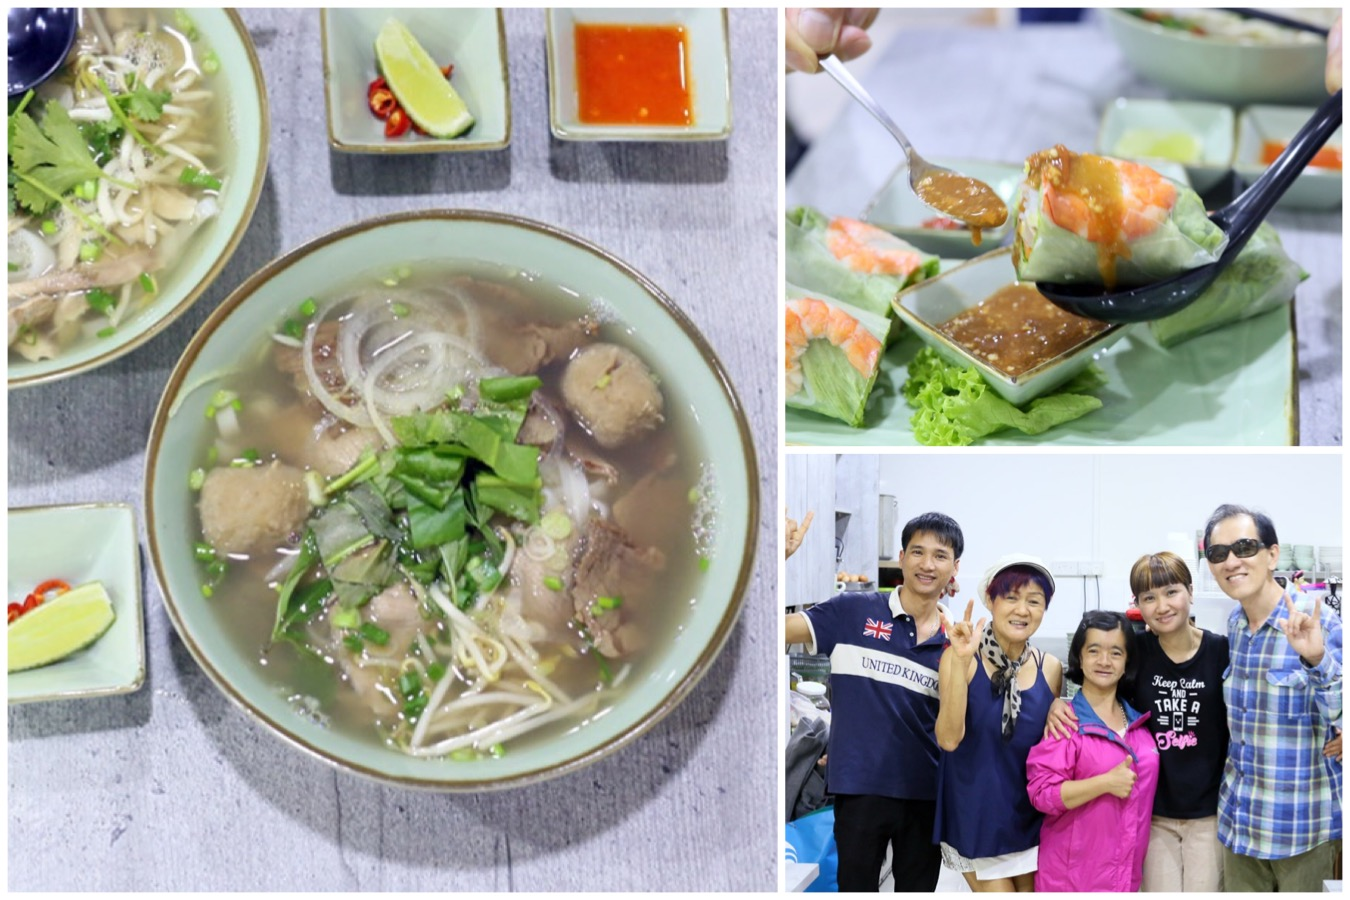 Signs A Taste Of Vietnam Pho – Deaf Inclusive Vietnamese Eatery At Orchard Road